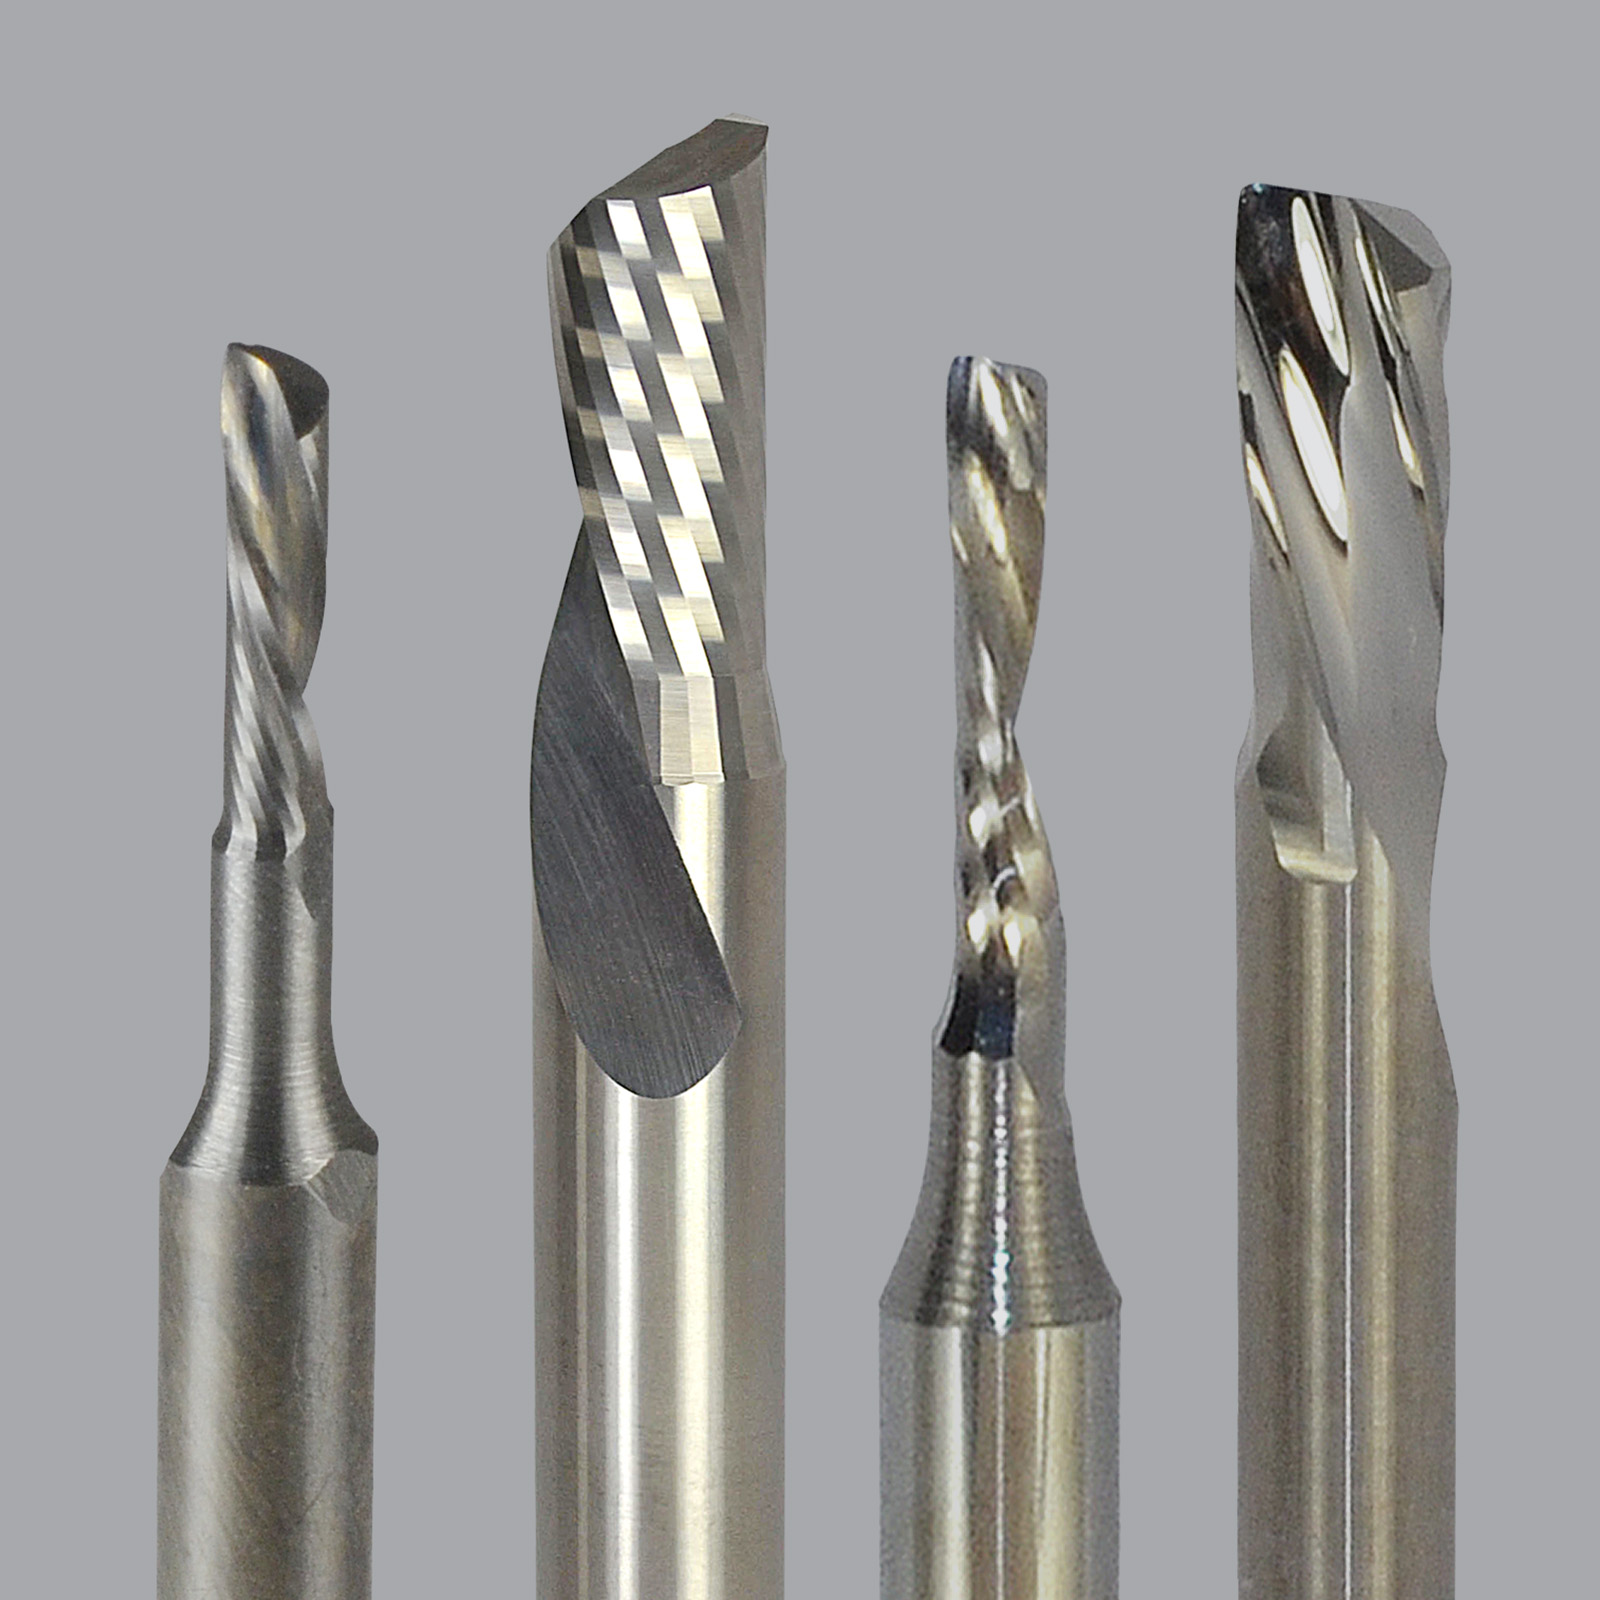 Onsrud Routing End Mill Alum Rougher//Finisher